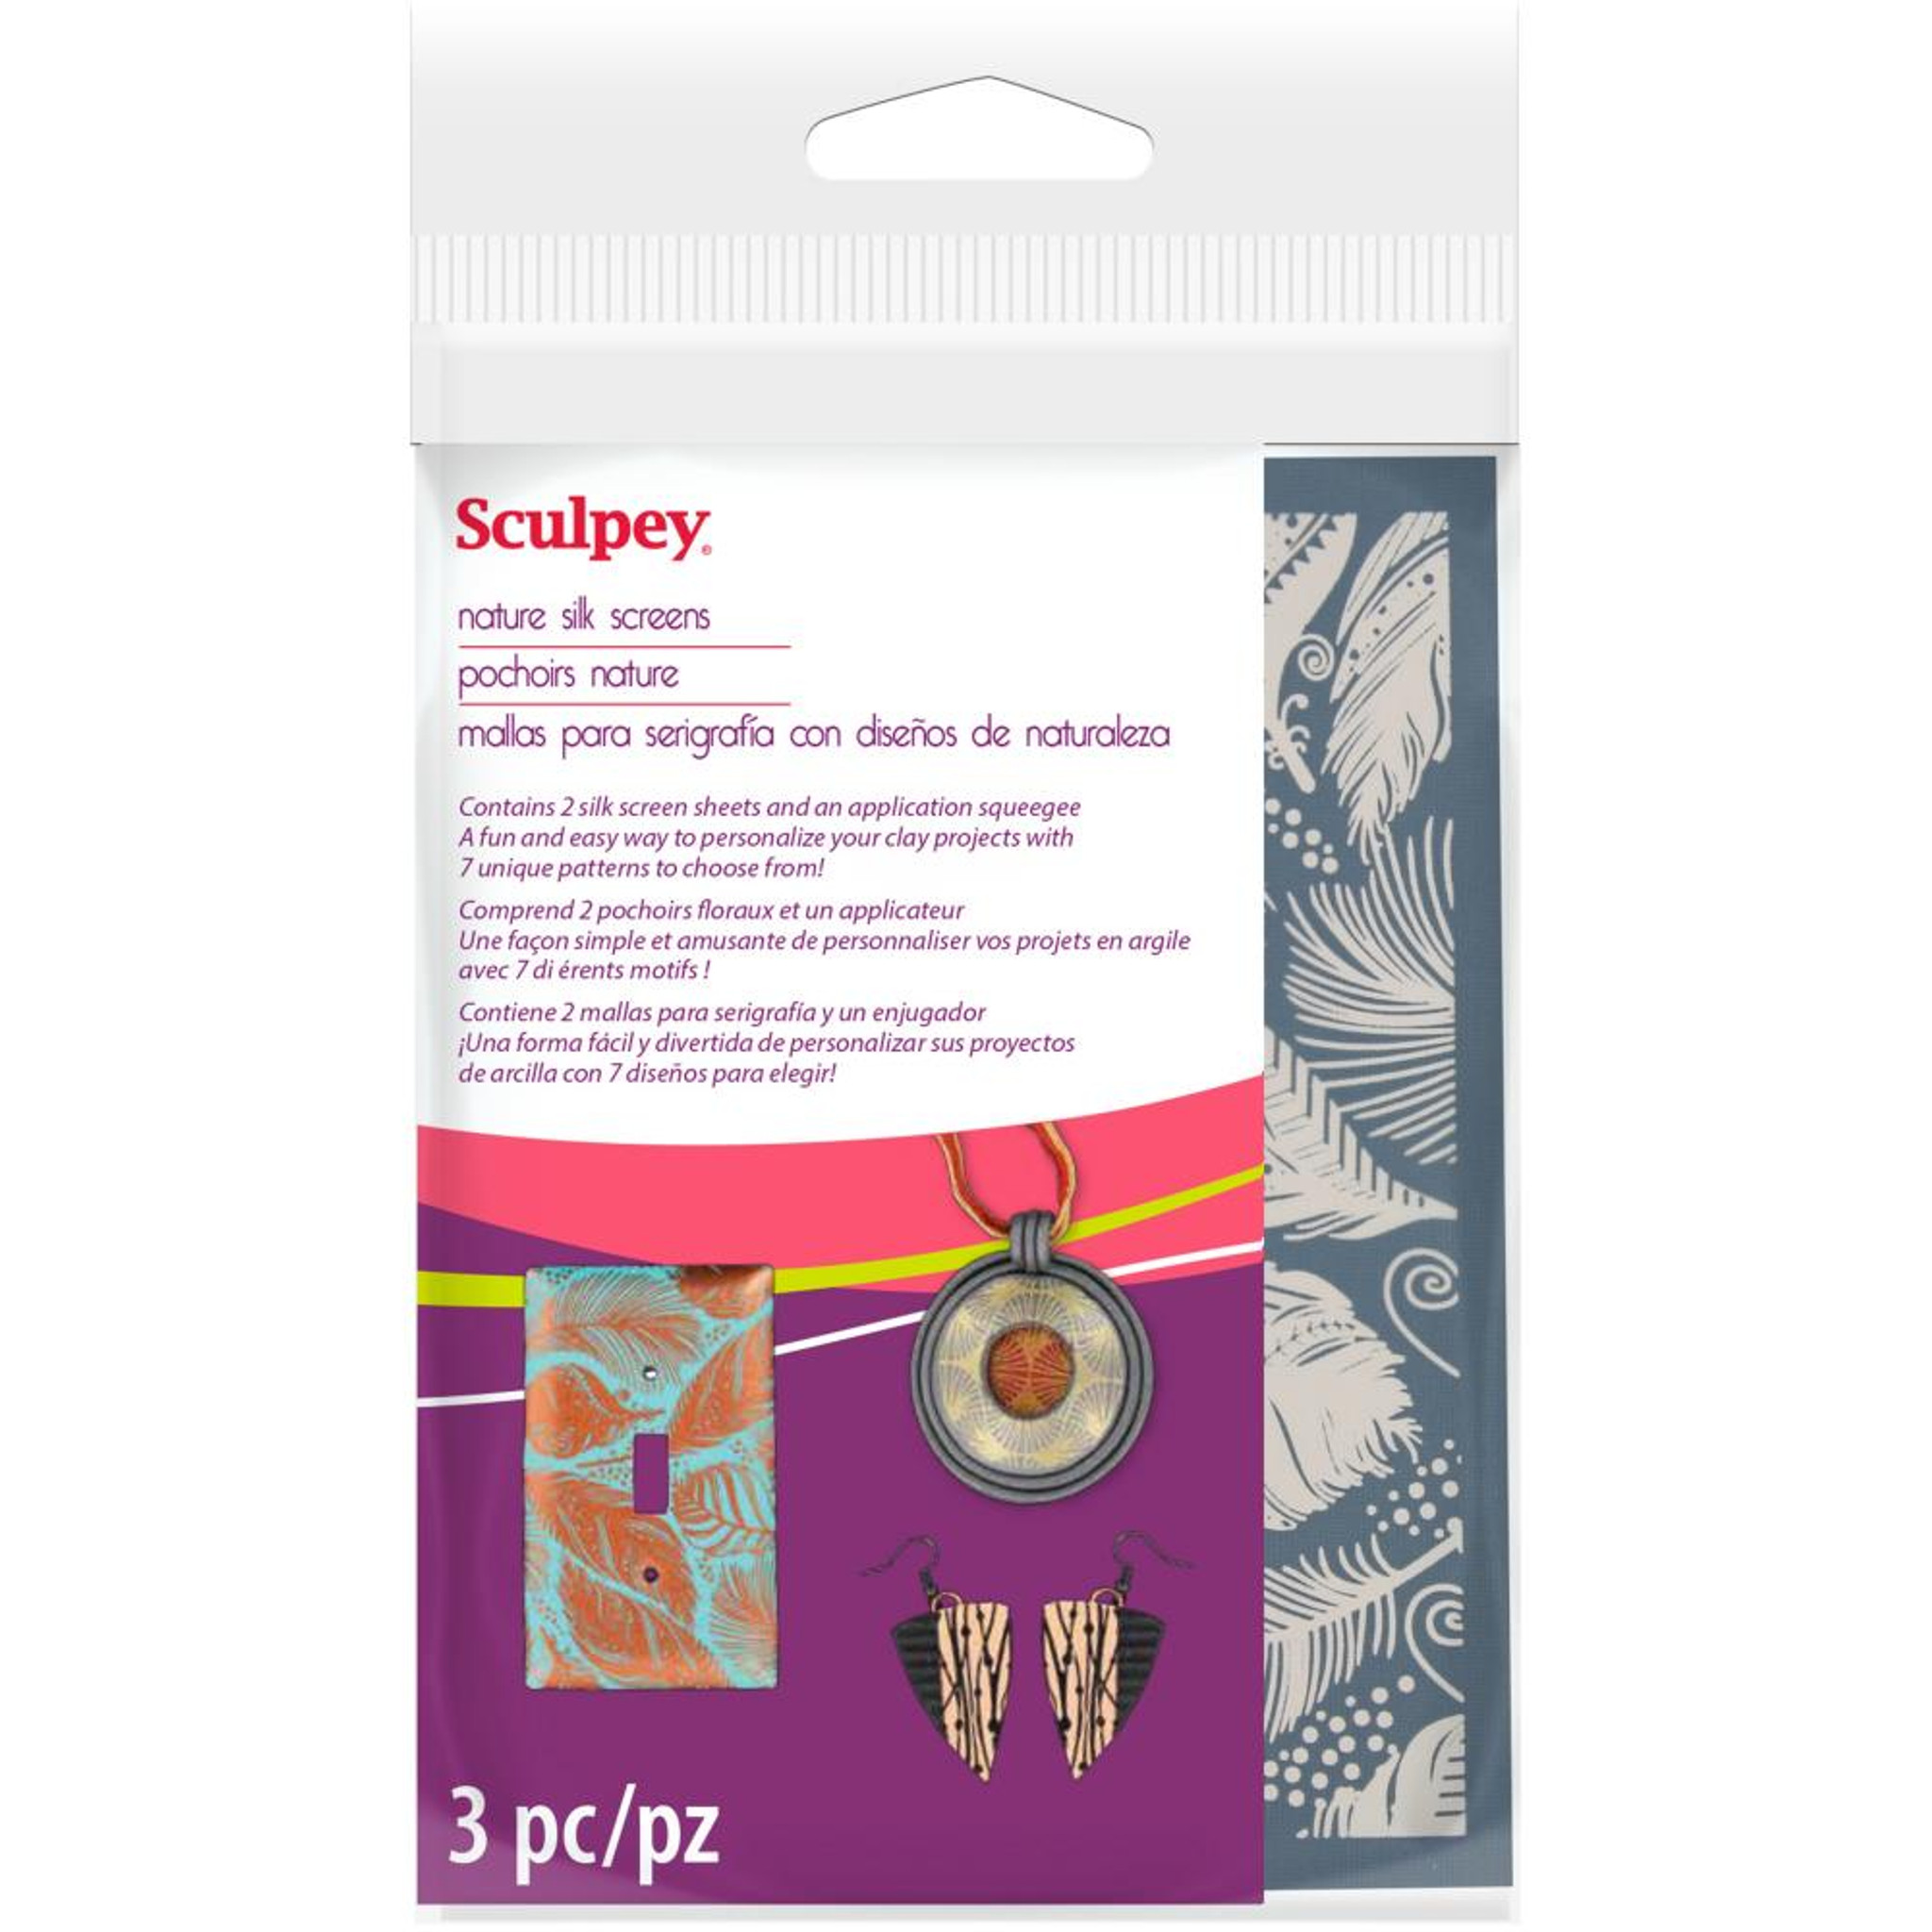 SCULPEY Polymer Clay SILK SCREEN KIT Metallic Paint Screens Patterns Stencils